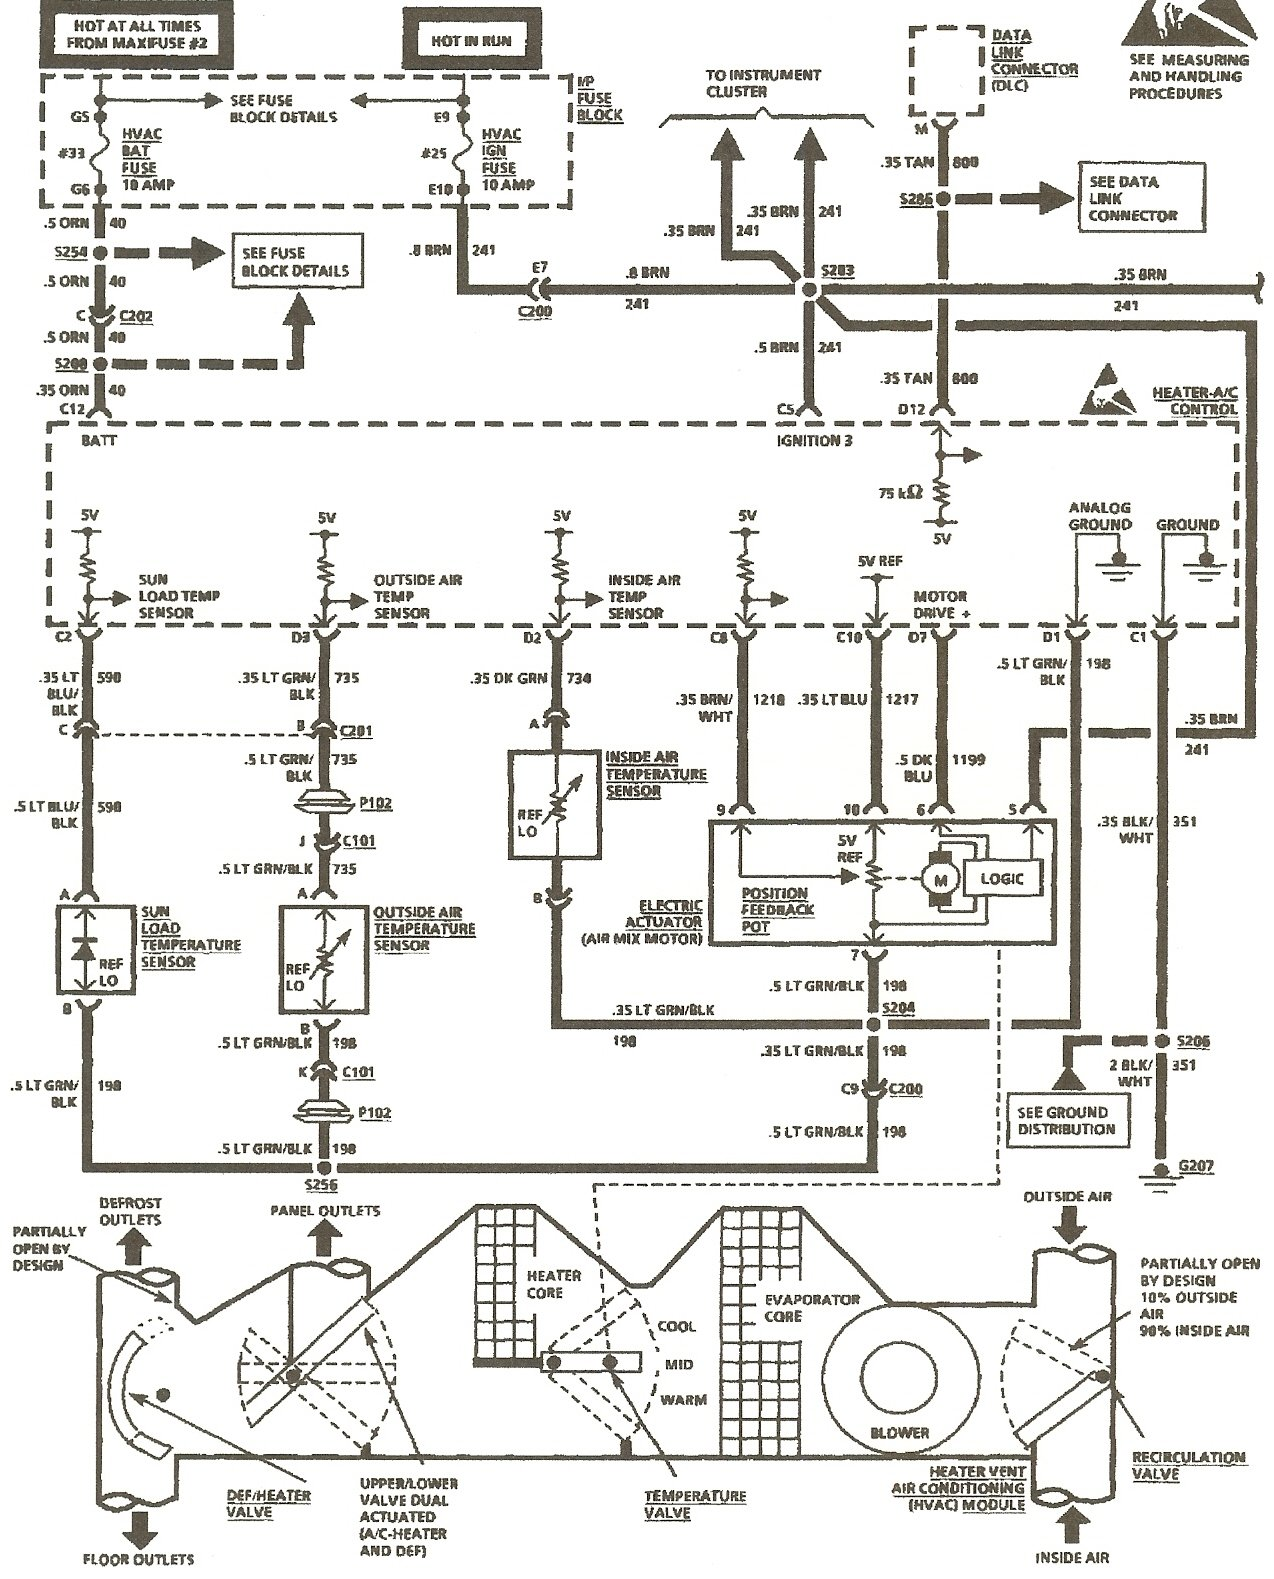 1994 Cadillac Deville Wiring Diagram Hecho Content Resource Of 1991 Seville Radio Detailed Schematic Diagrams Rh 4rmotorsports Com 1990 Speaker